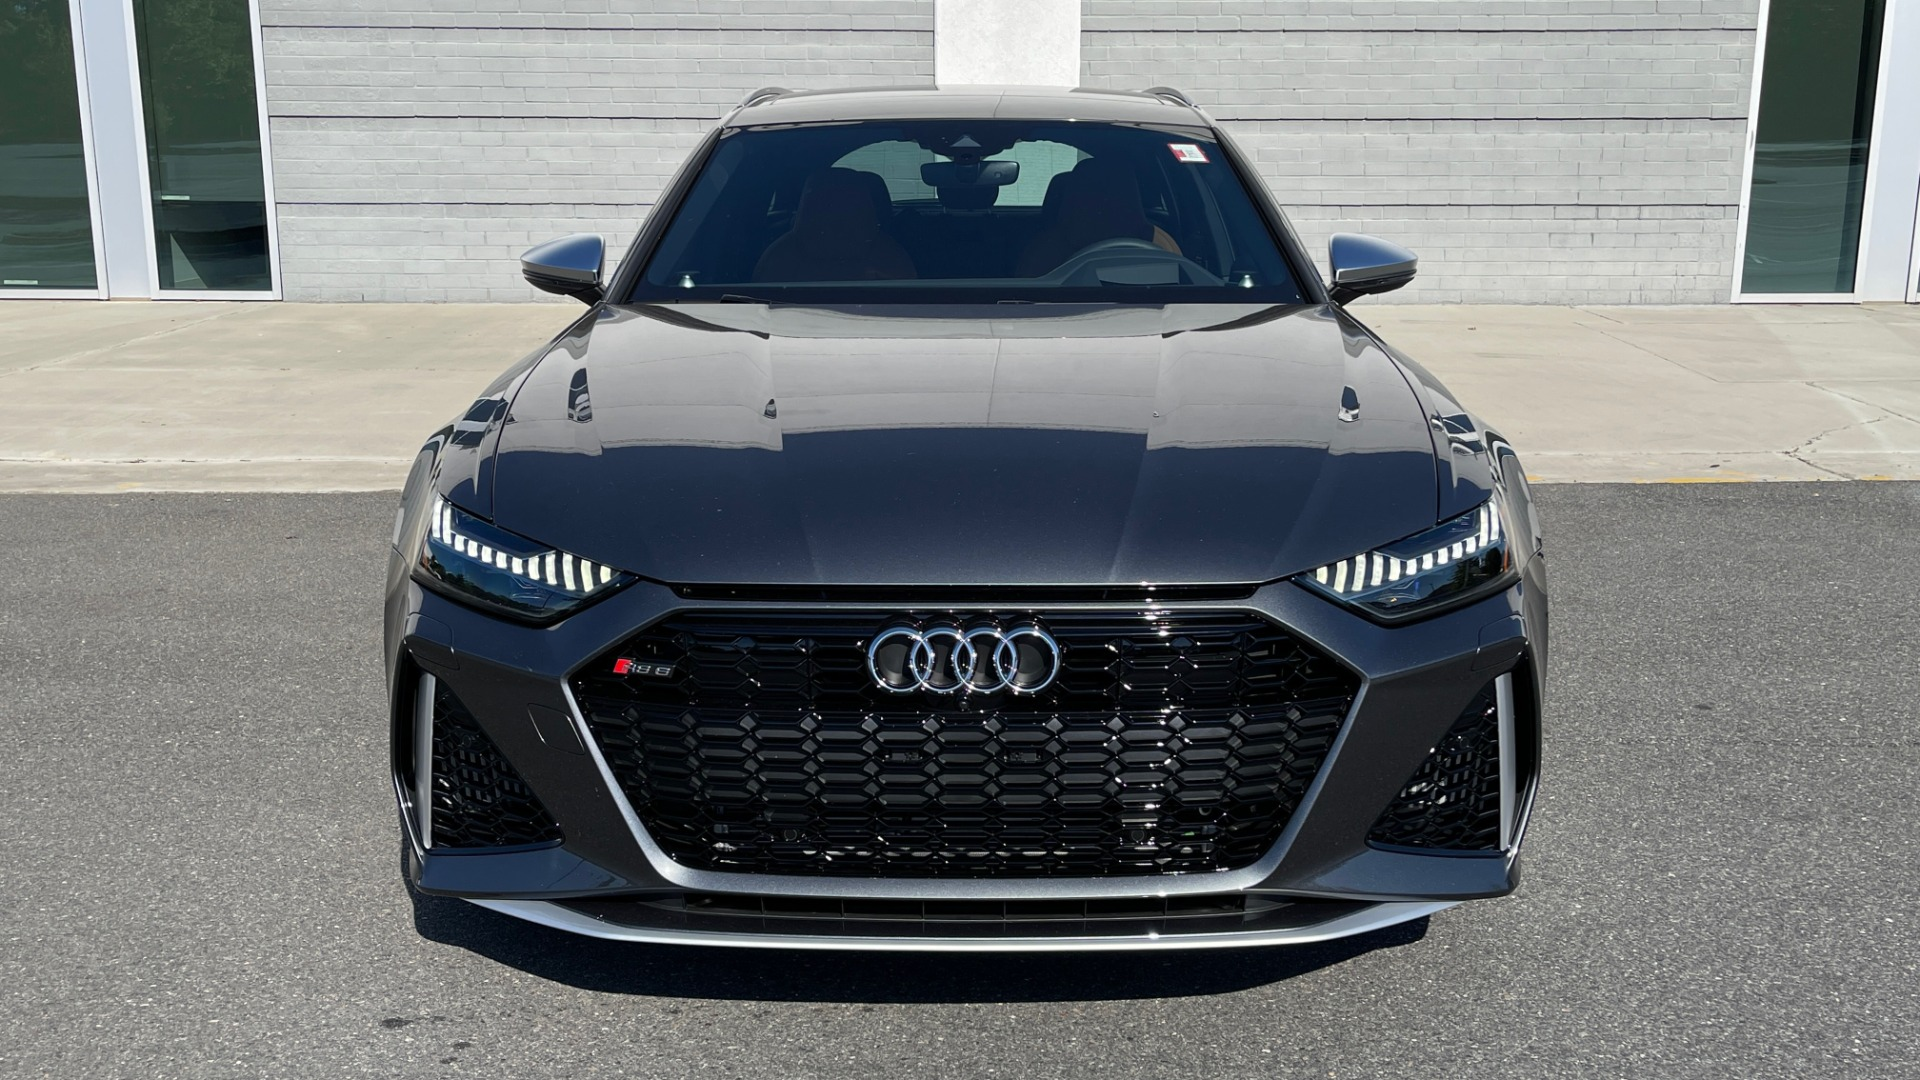 Used 2021 Audi RS 6 AVANT WAGON / EXEC PKG / CARBON OPTIC / B&O SND / DRVR ASST / SPRT EXH for sale Sold at Formula Imports in Charlotte NC 28227 7